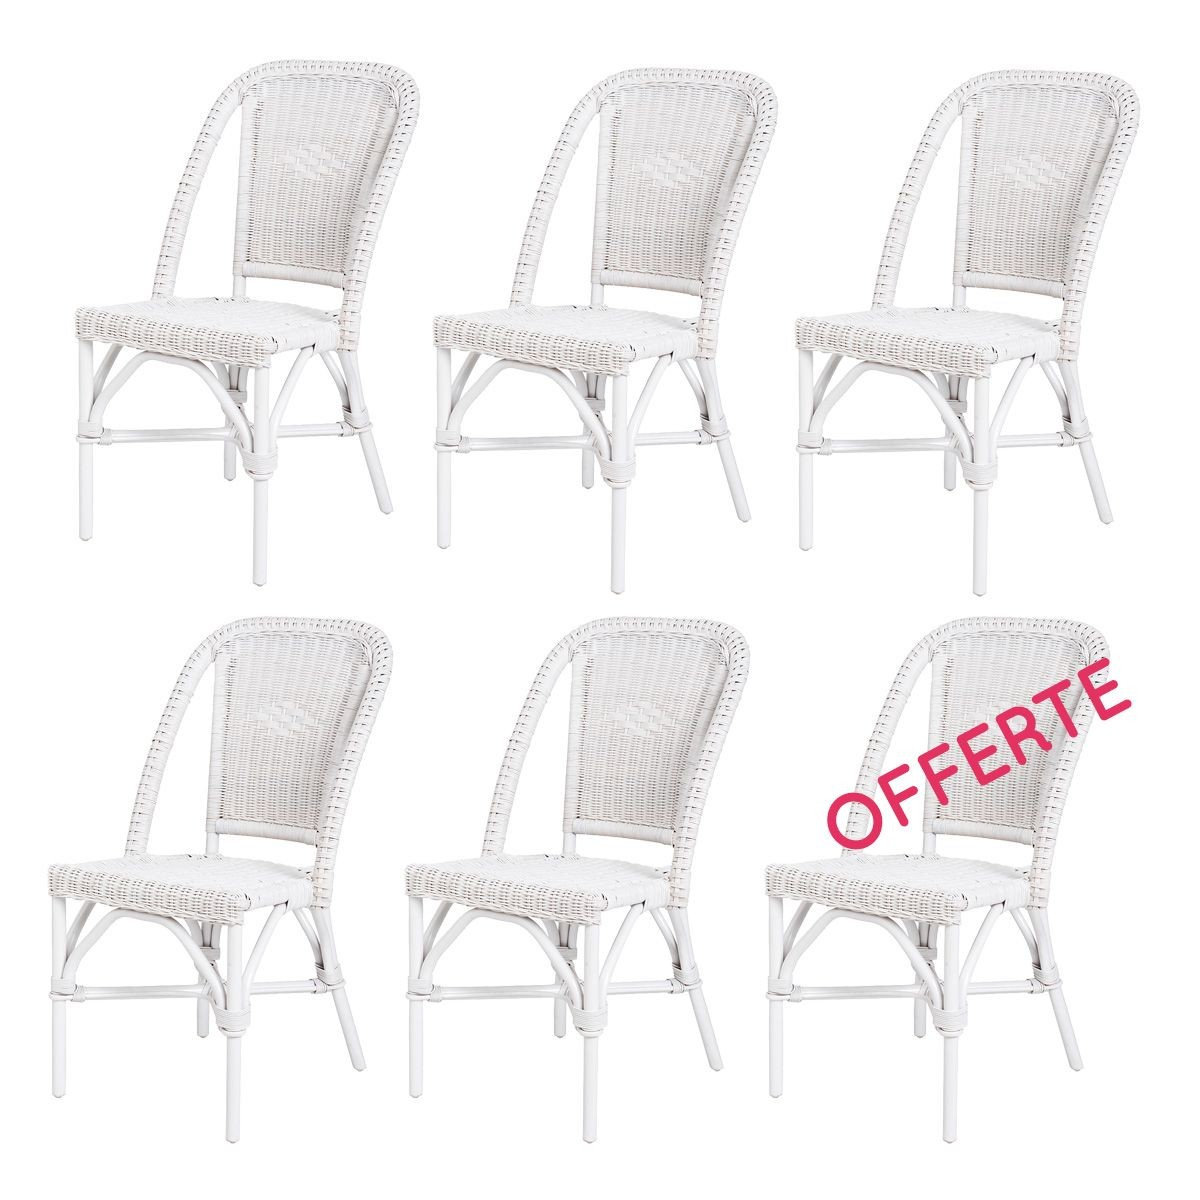 chaise en rotin blanc selva rotin design lot de 6 chaises. Black Bedroom Furniture Sets. Home Design Ideas